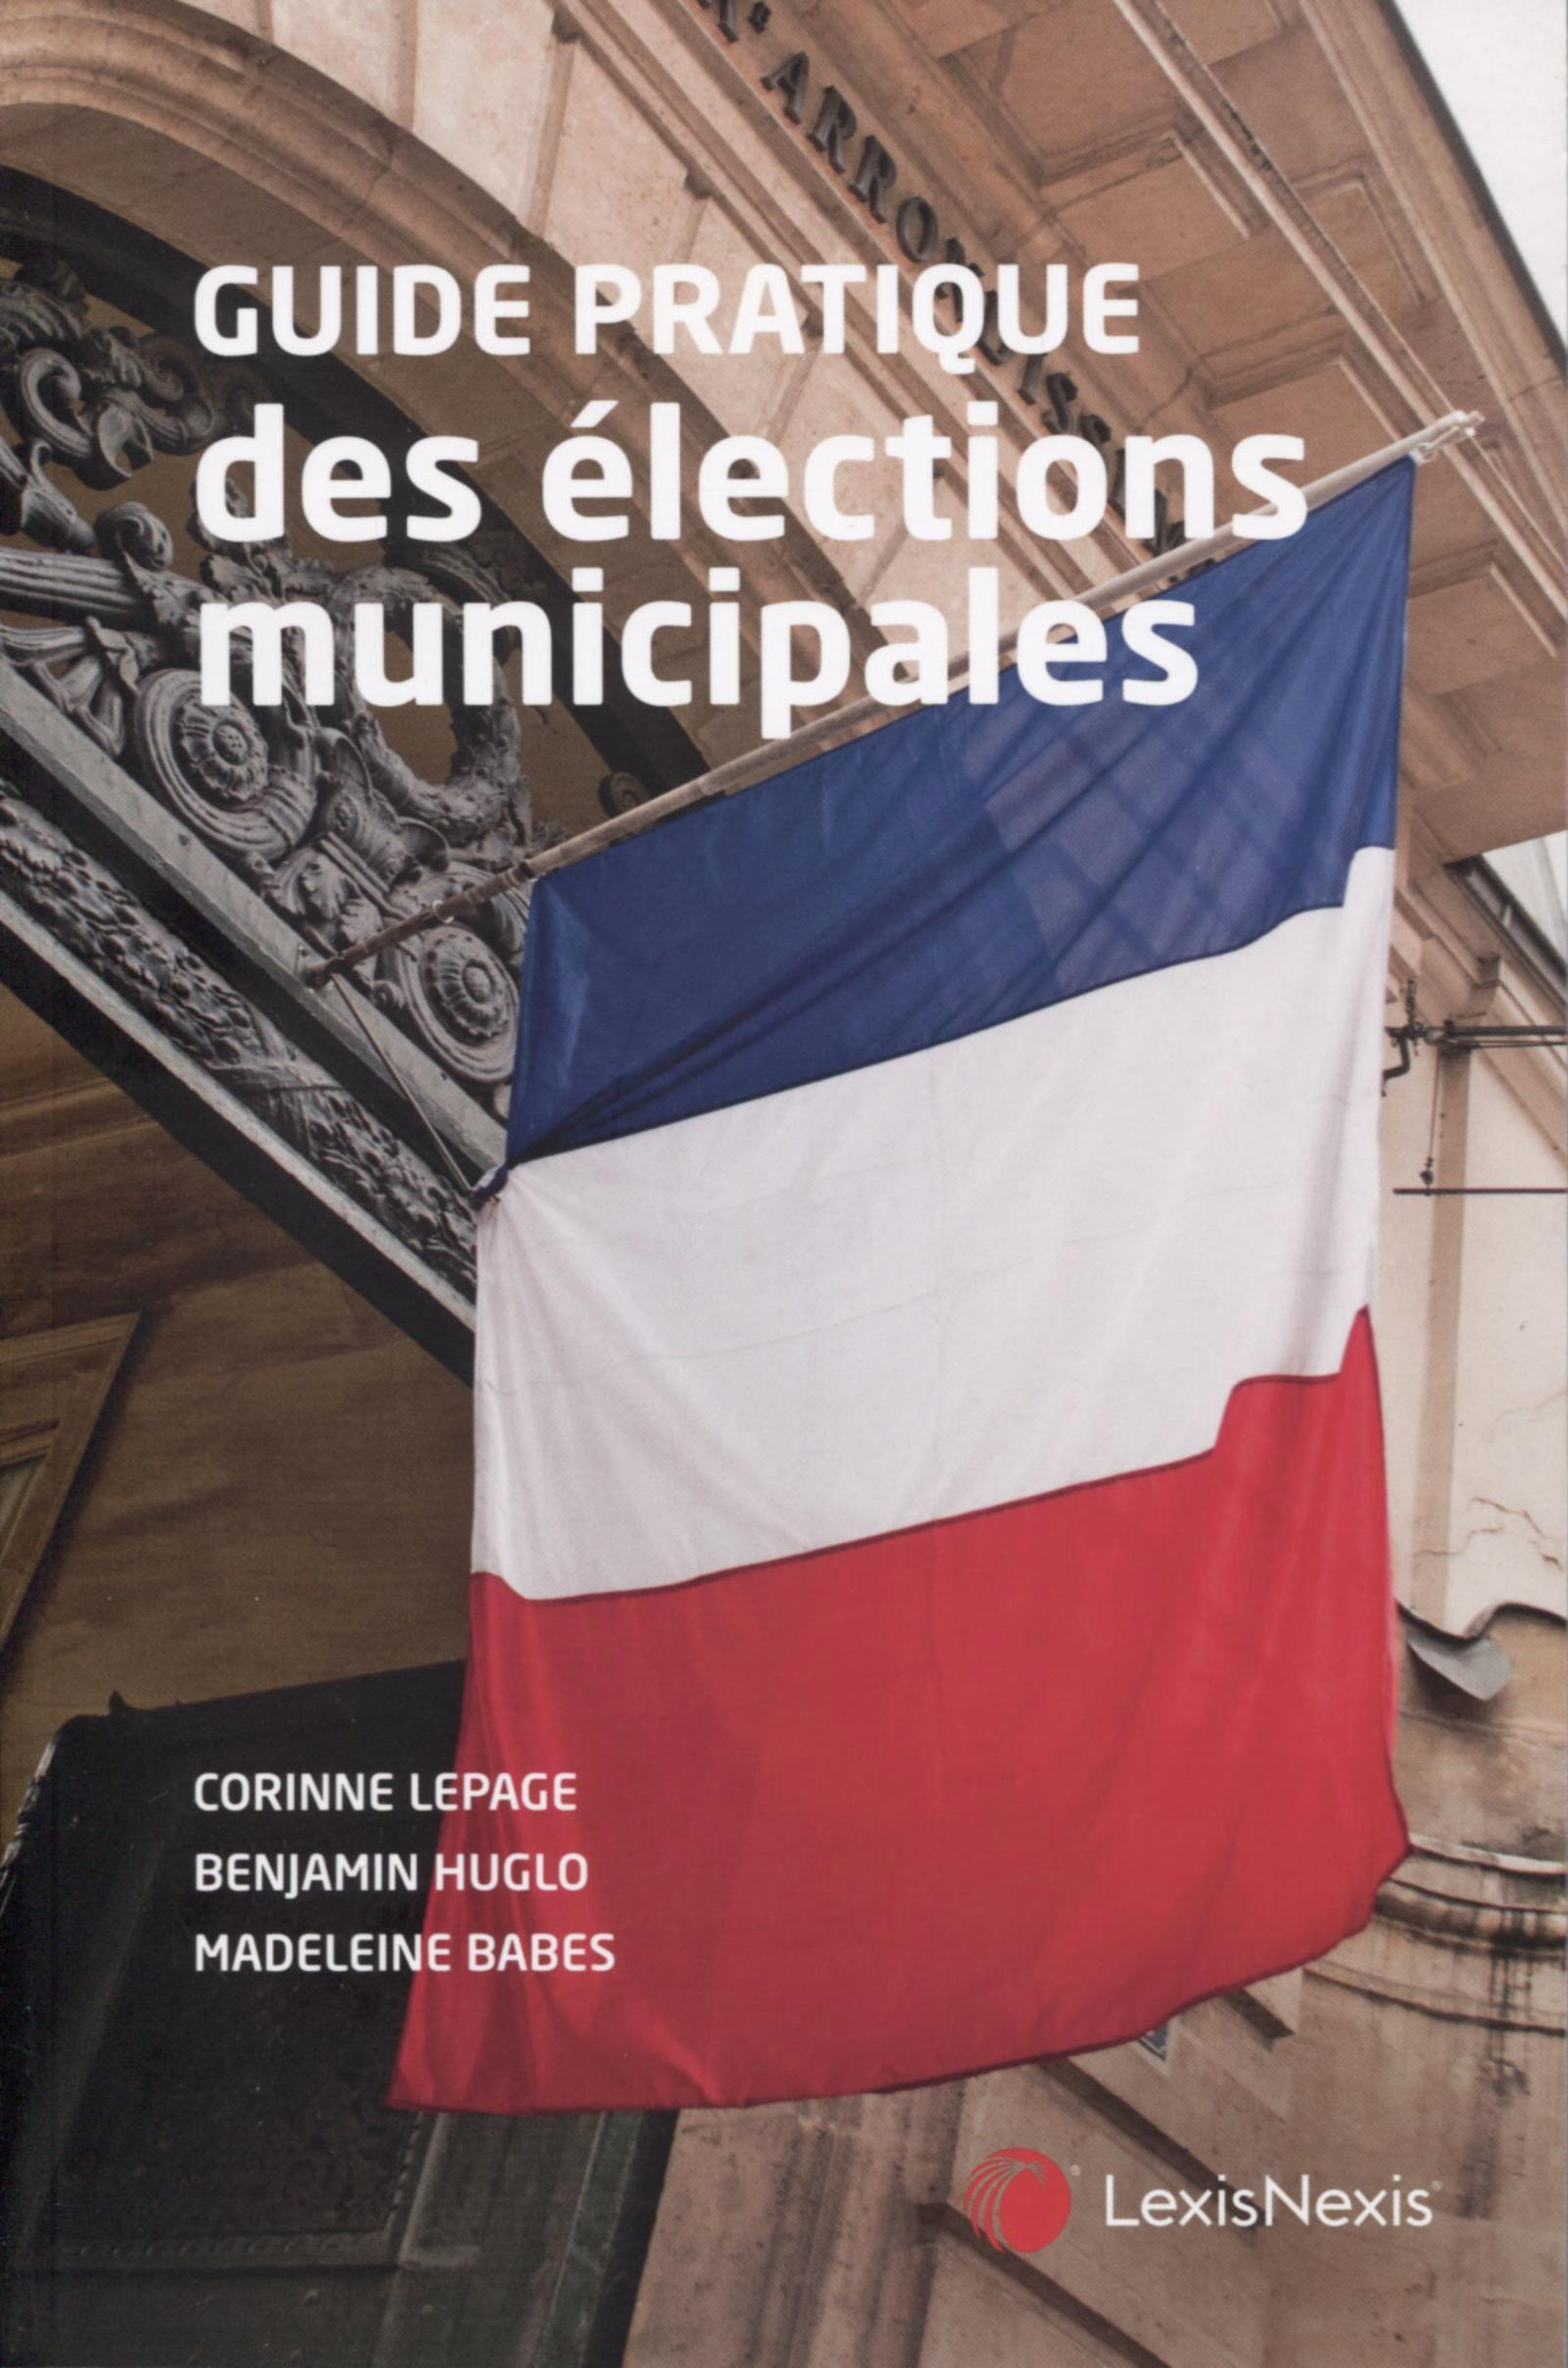 GUIDE PRATIQUE DES ELECTIONS MUNICIPALES